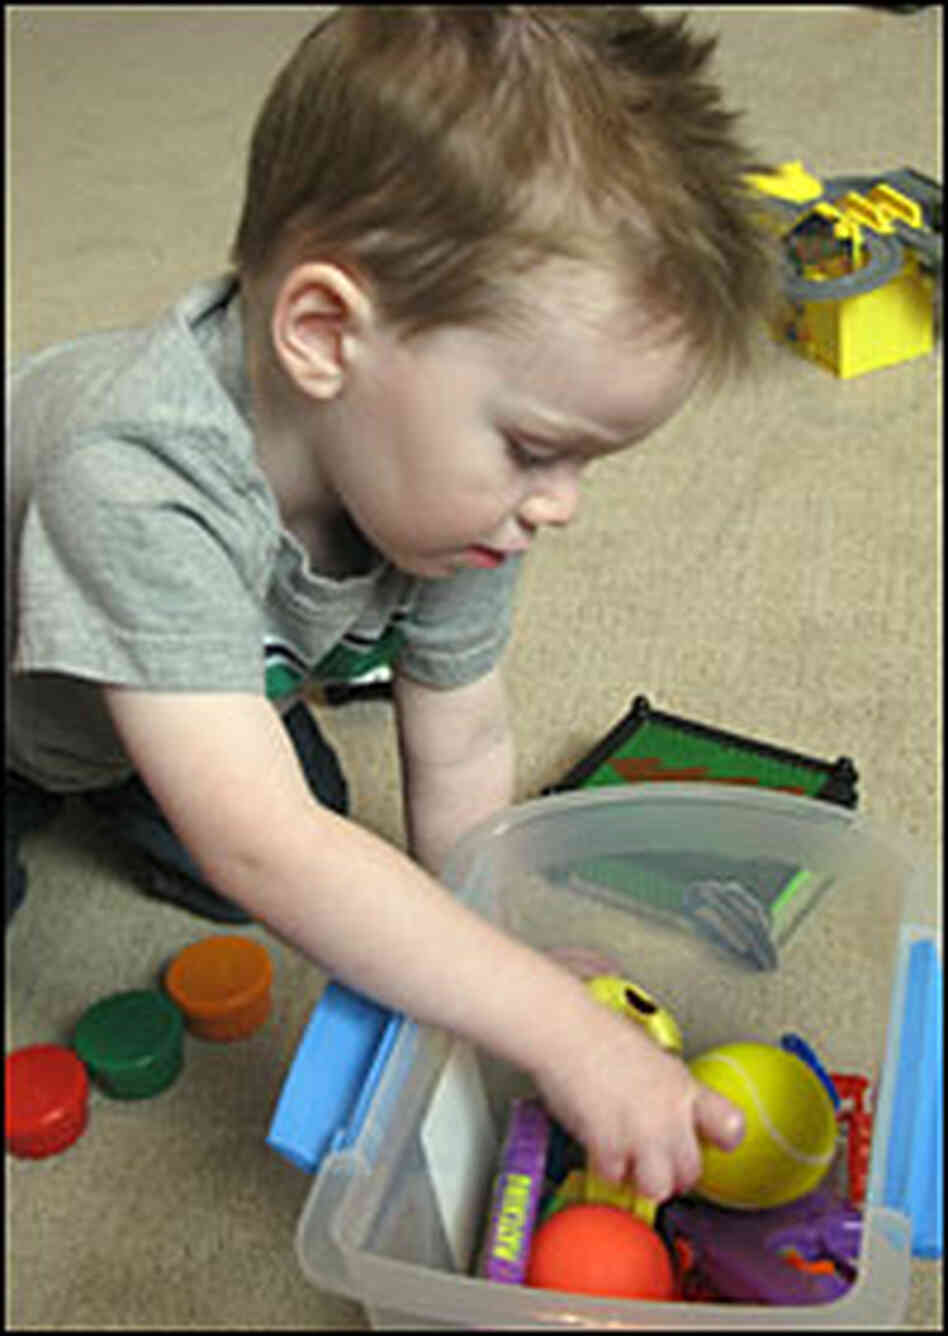 Ben Johnson, 2, has developmental delays due to autism.